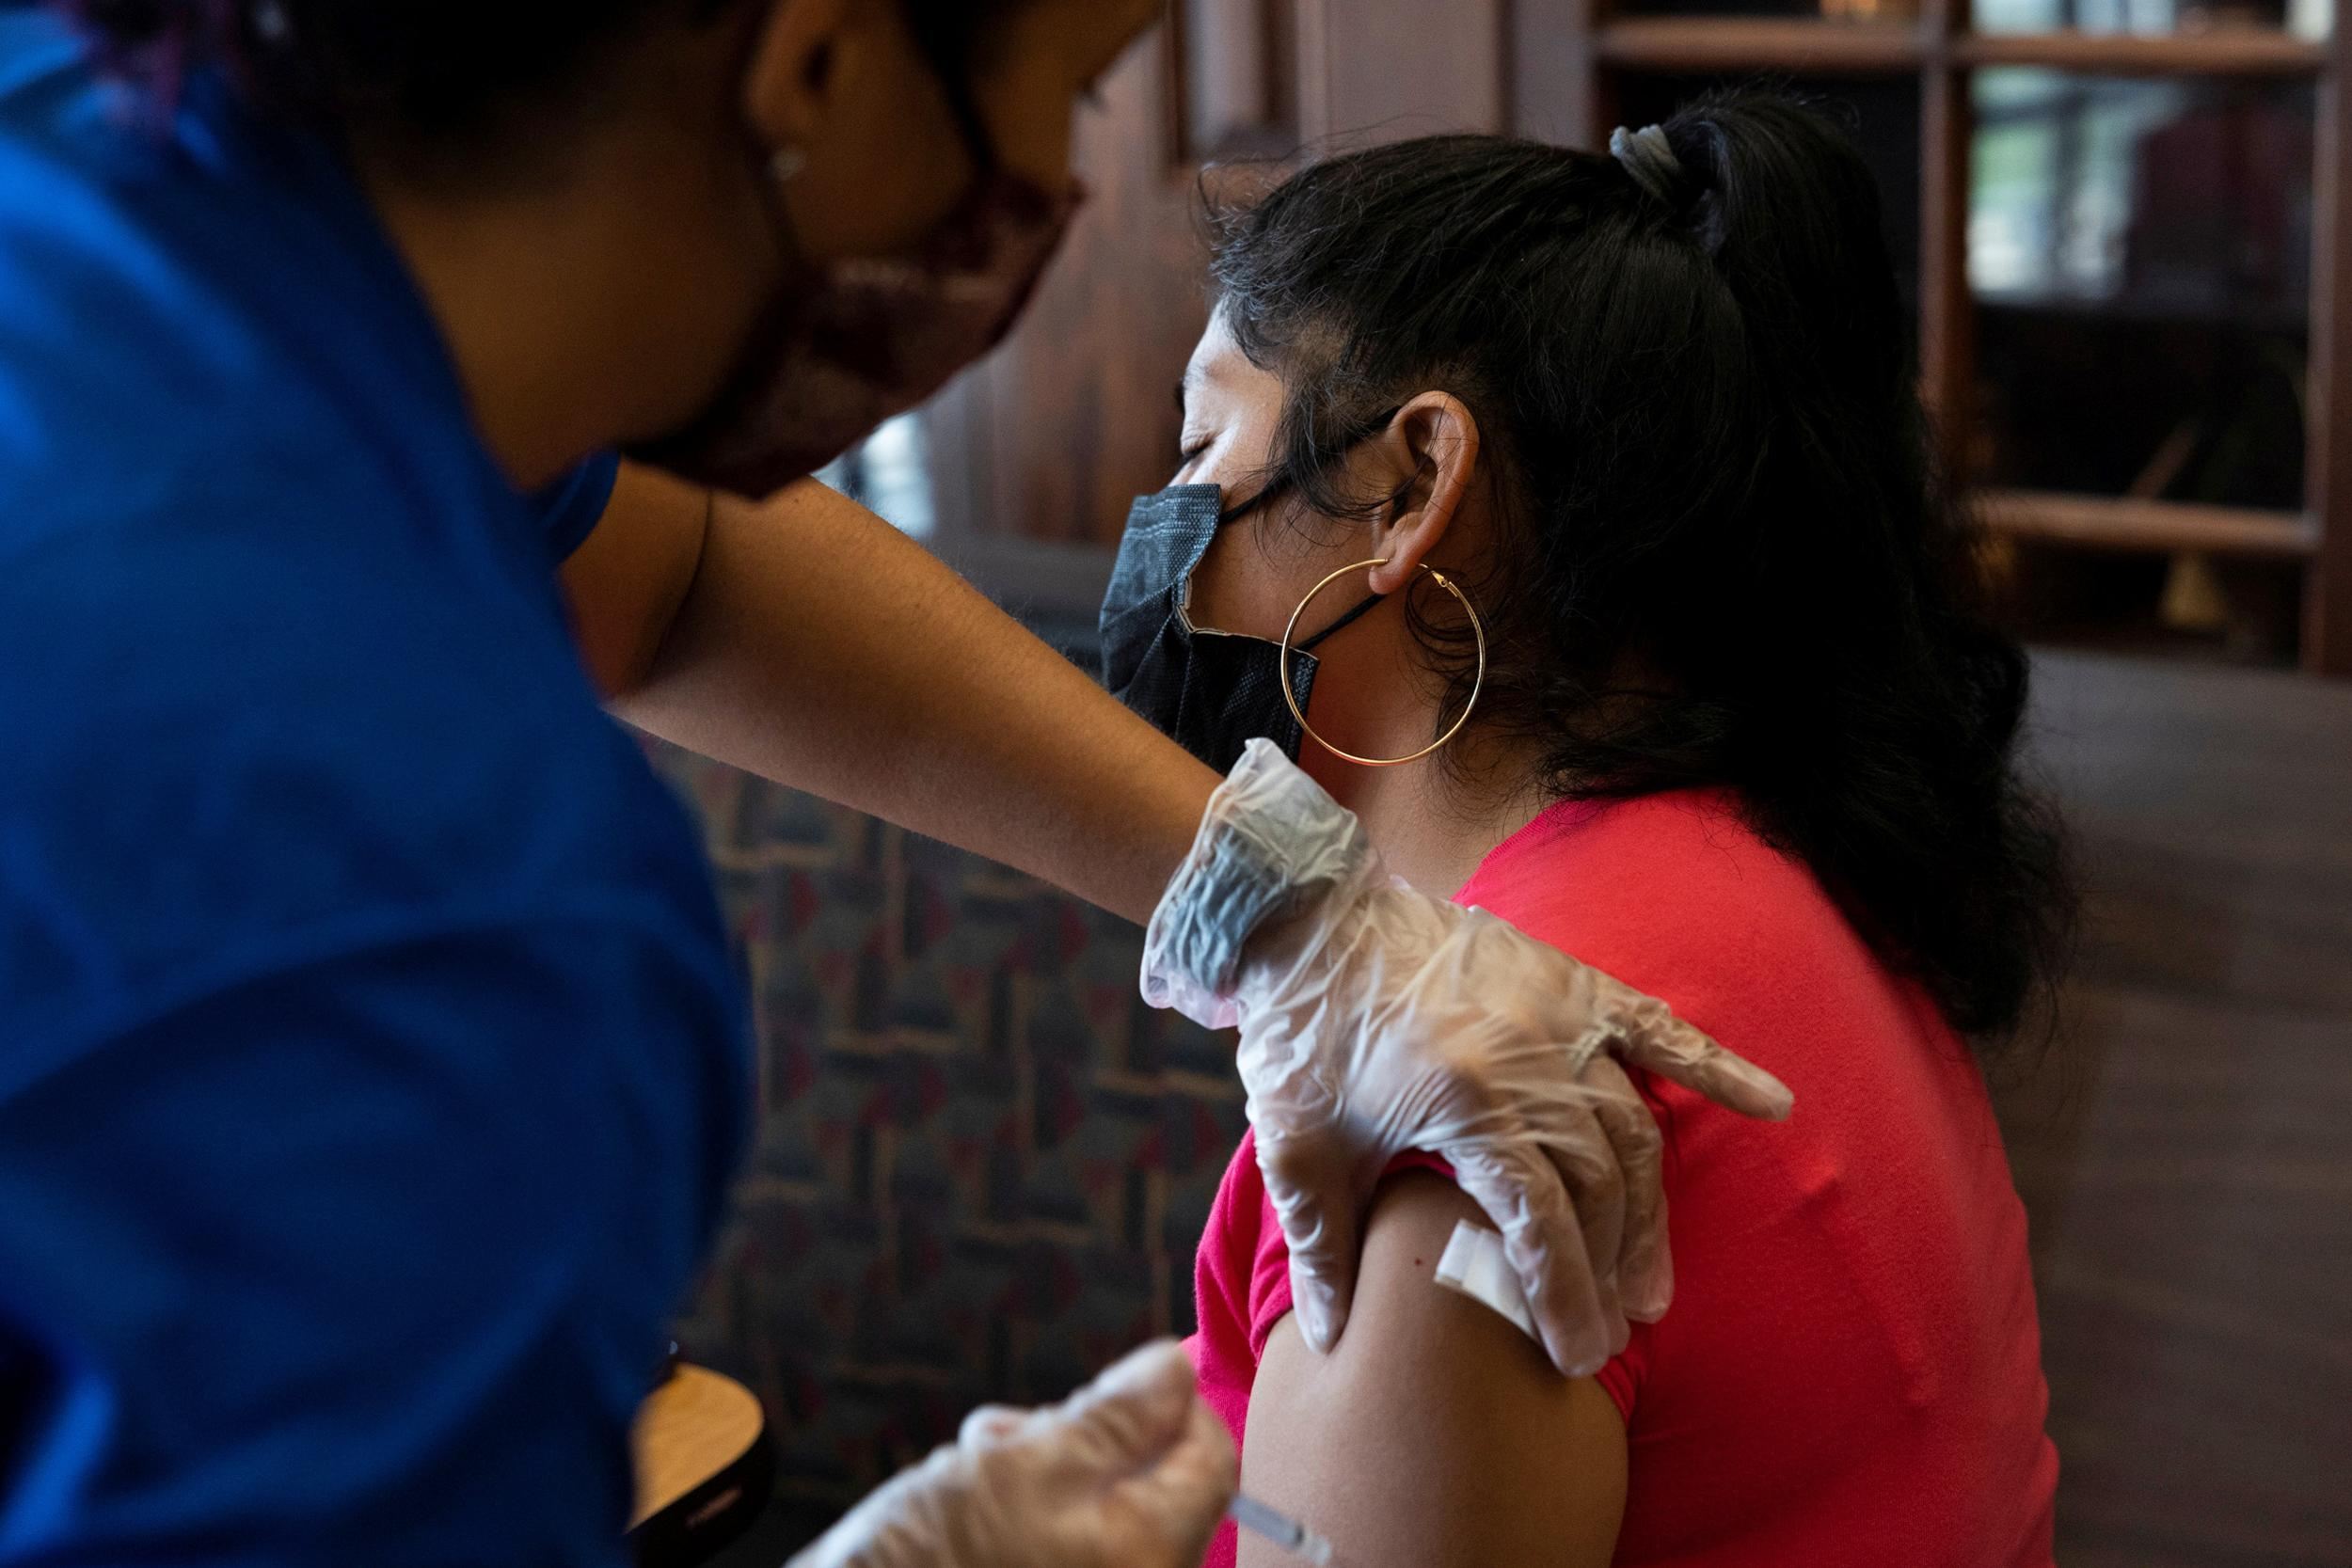 Group to use $2.5 million award to vaccinate more Latinos against Covid